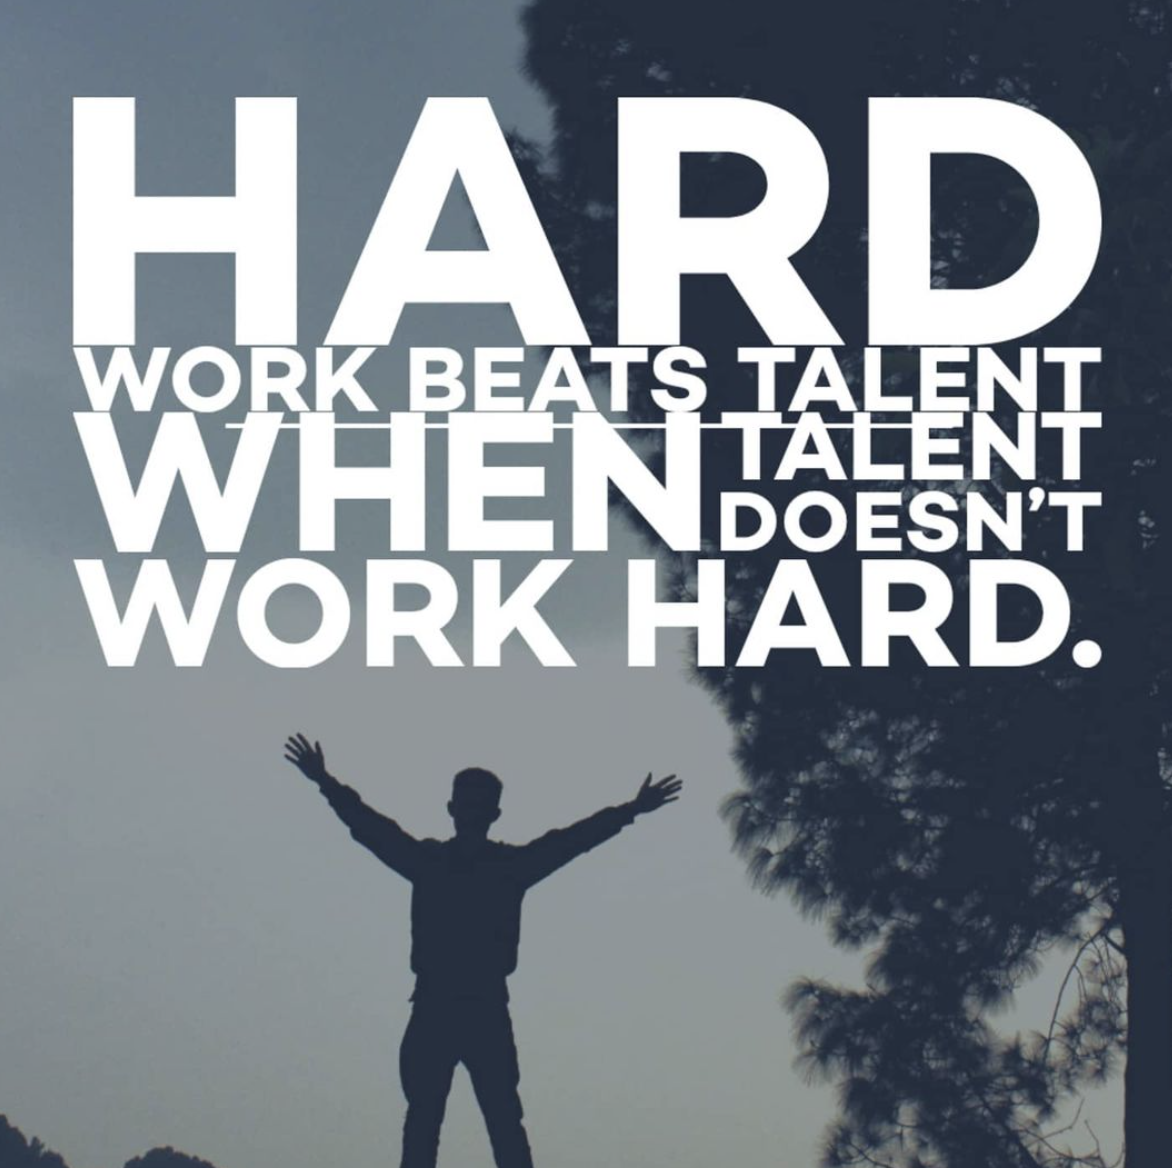 [Image] Hard work beats talent when talent doesn't work hard.